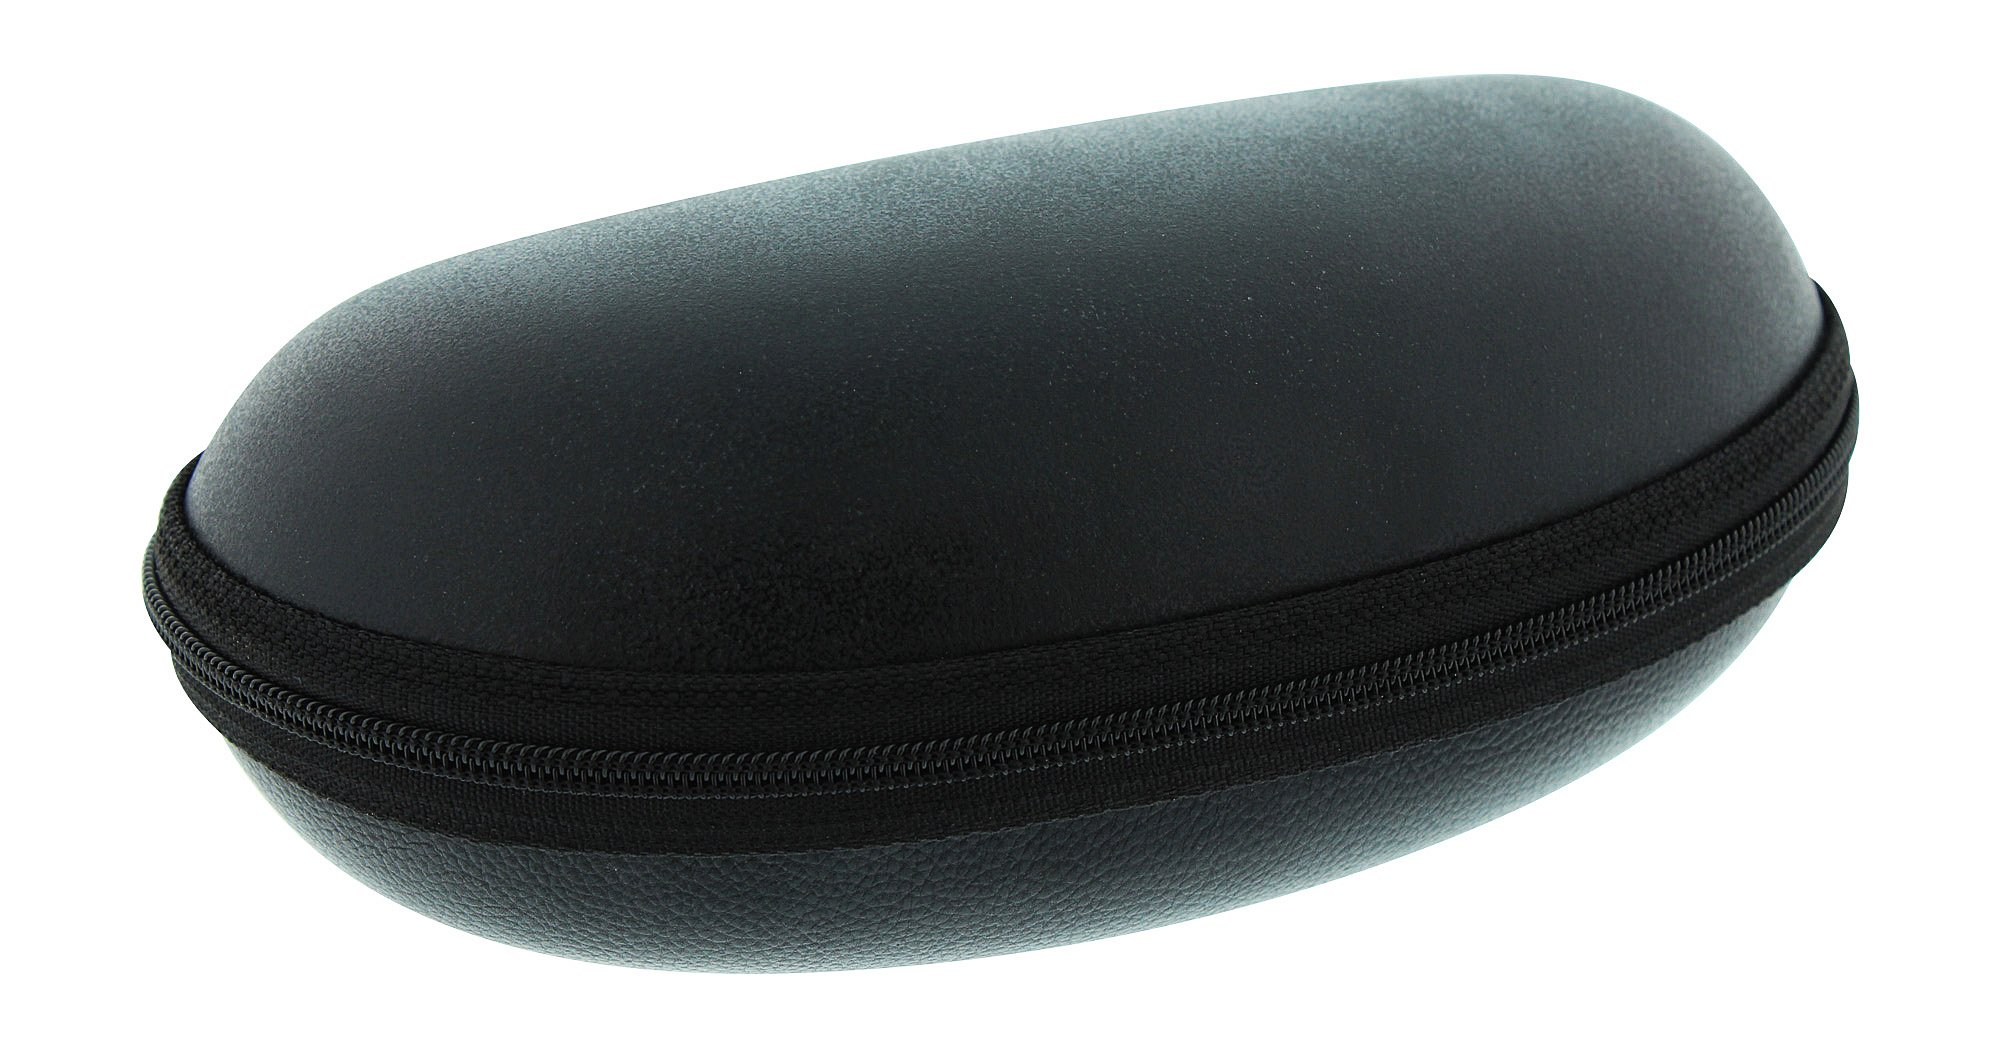 Extra Large Zip Up Eyeglass Case For Men & Women, Fits 2 Pairs Of Glasses, Black